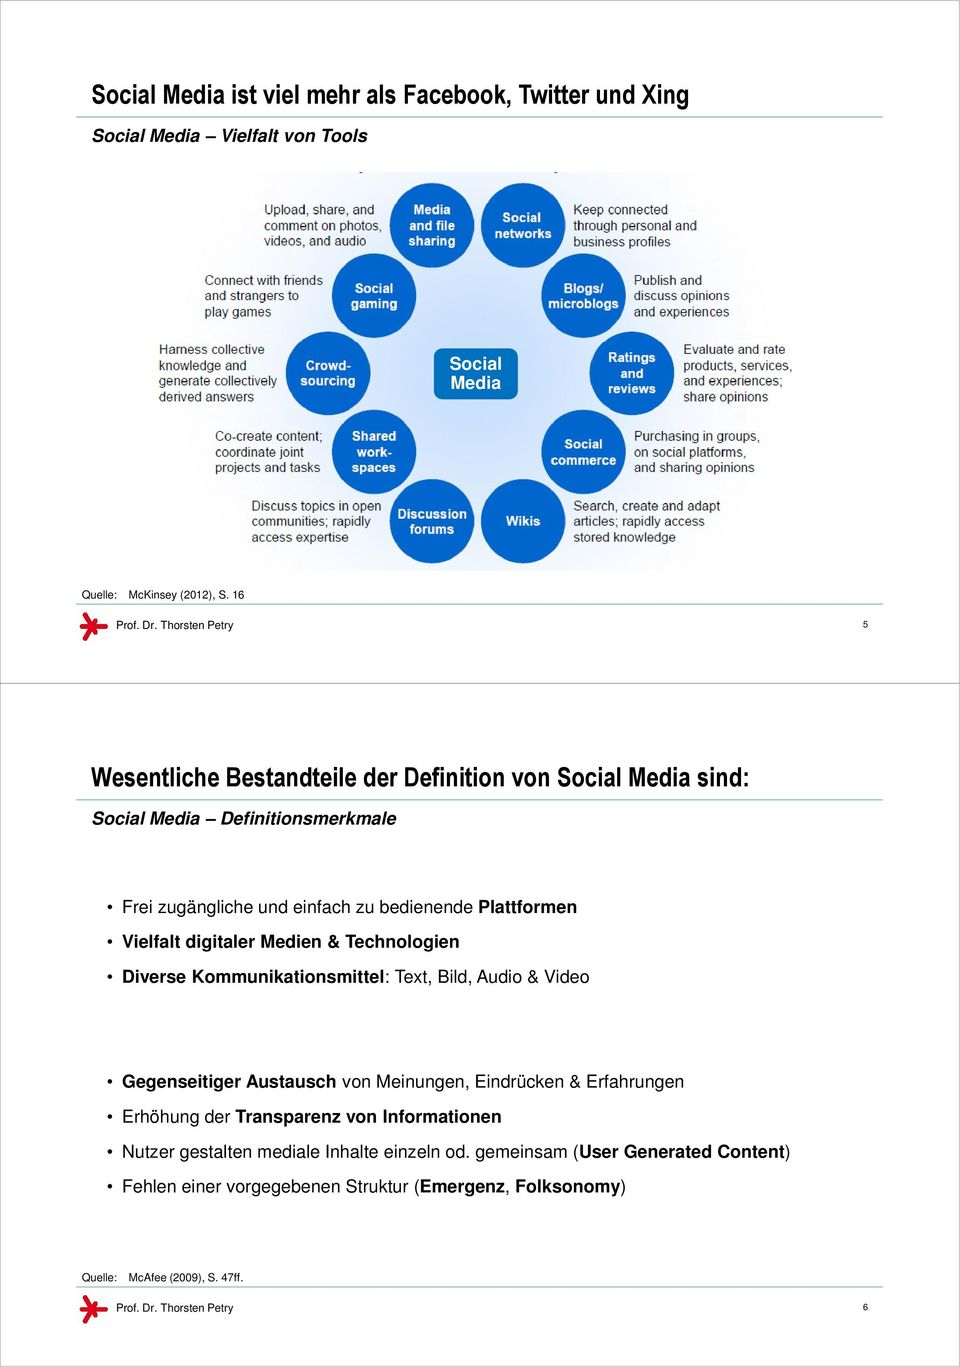 digitaler Medien & Technologien Diverse Kommunikationsmittel: Text, Bild, Audio & Video Gegenseitiger Austausch von Meinungen, Eindrücken & Erfahrungen Erhöhung der Transparenz